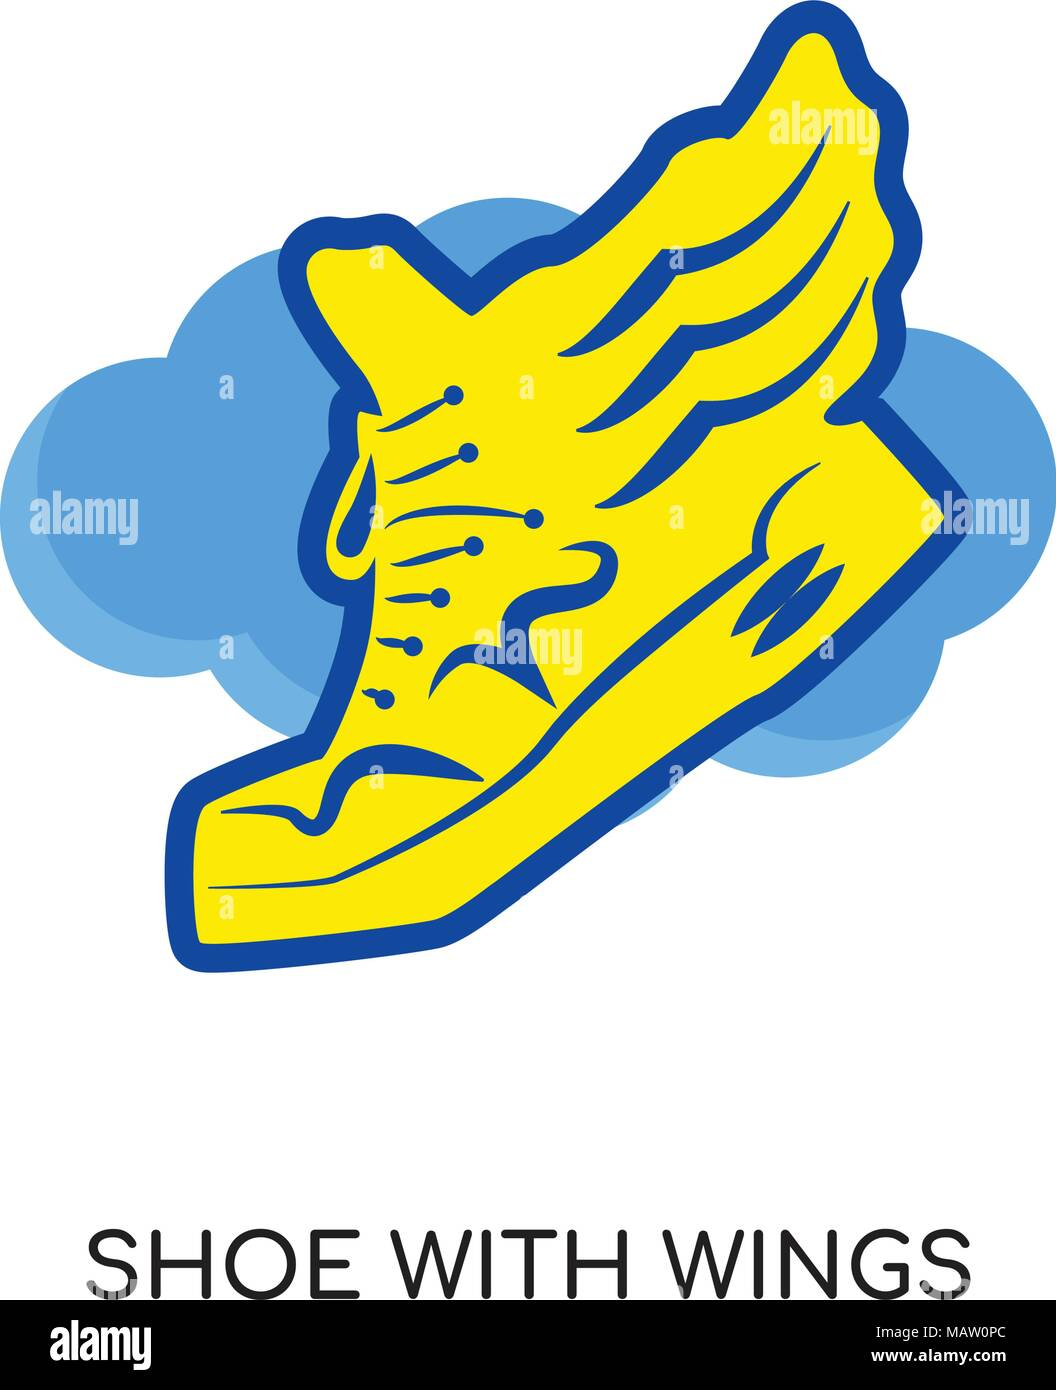 shoe with wings logo isolated on white background for your web rh alamy com shoe with wings logo answer is called shoes with wings logo quiz